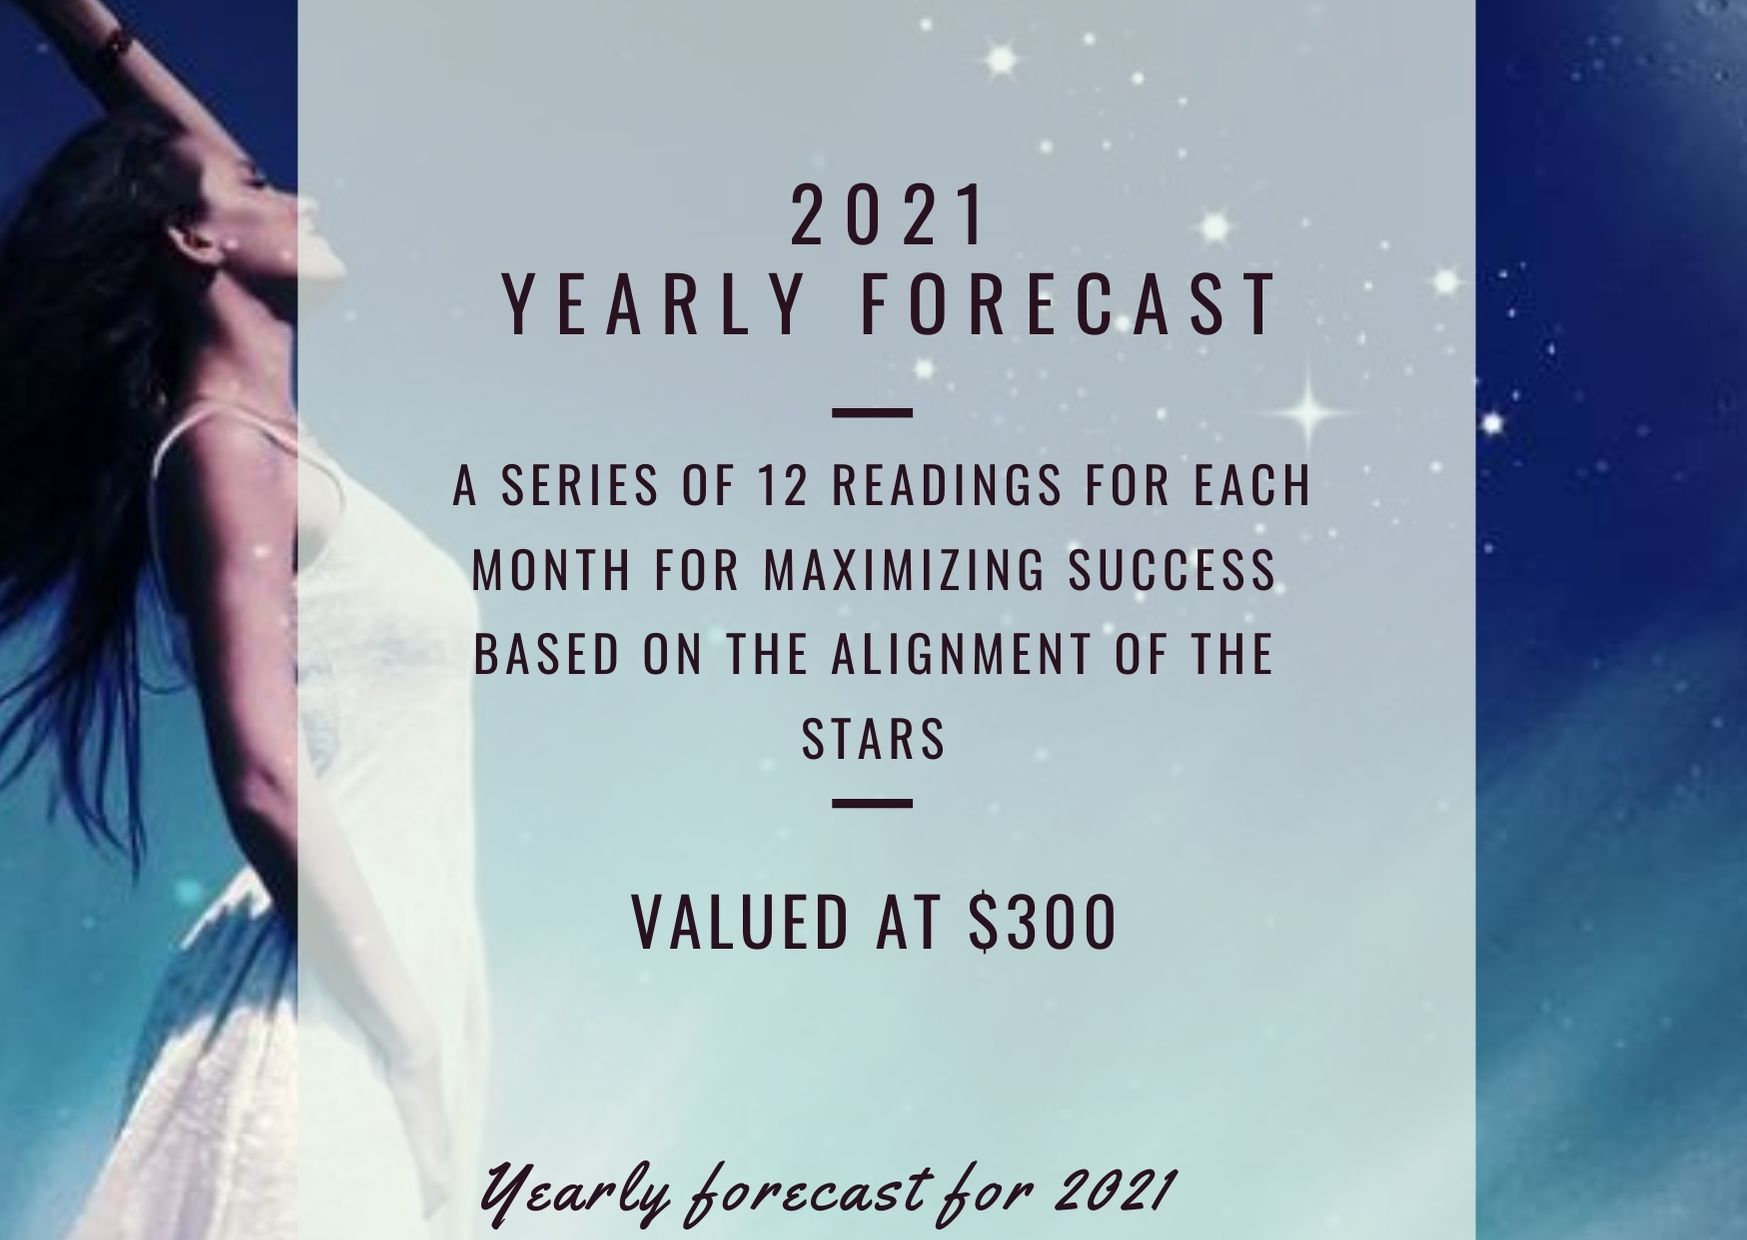 2021 yearly forecast